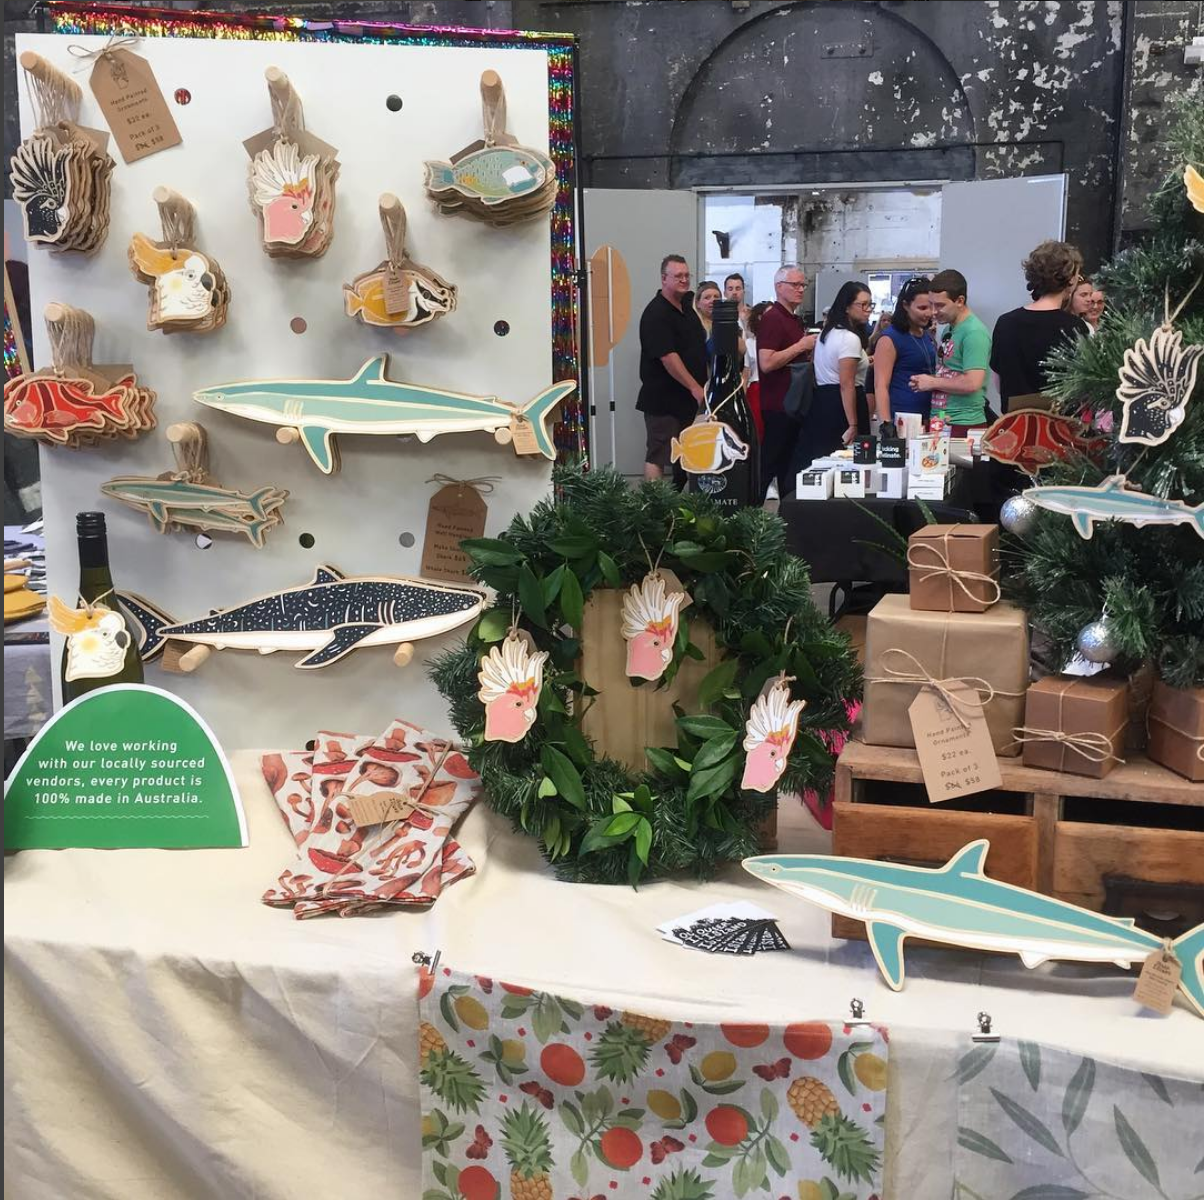 Market table at the Carriageworks Christmas Market in December